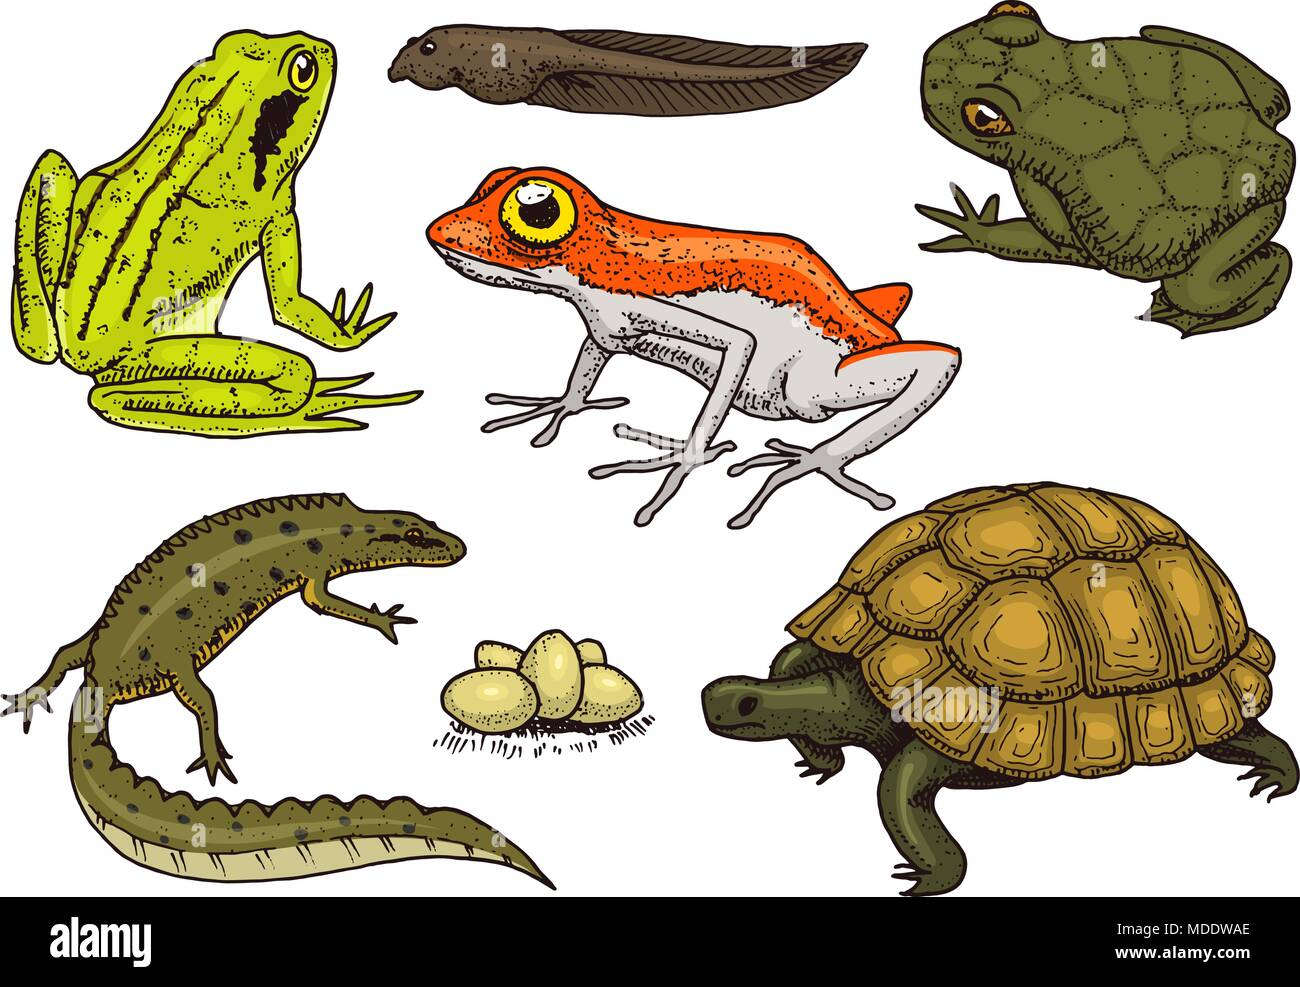 Crocodile Newt Stock Photos Amp Crocodile Newt Stock Images